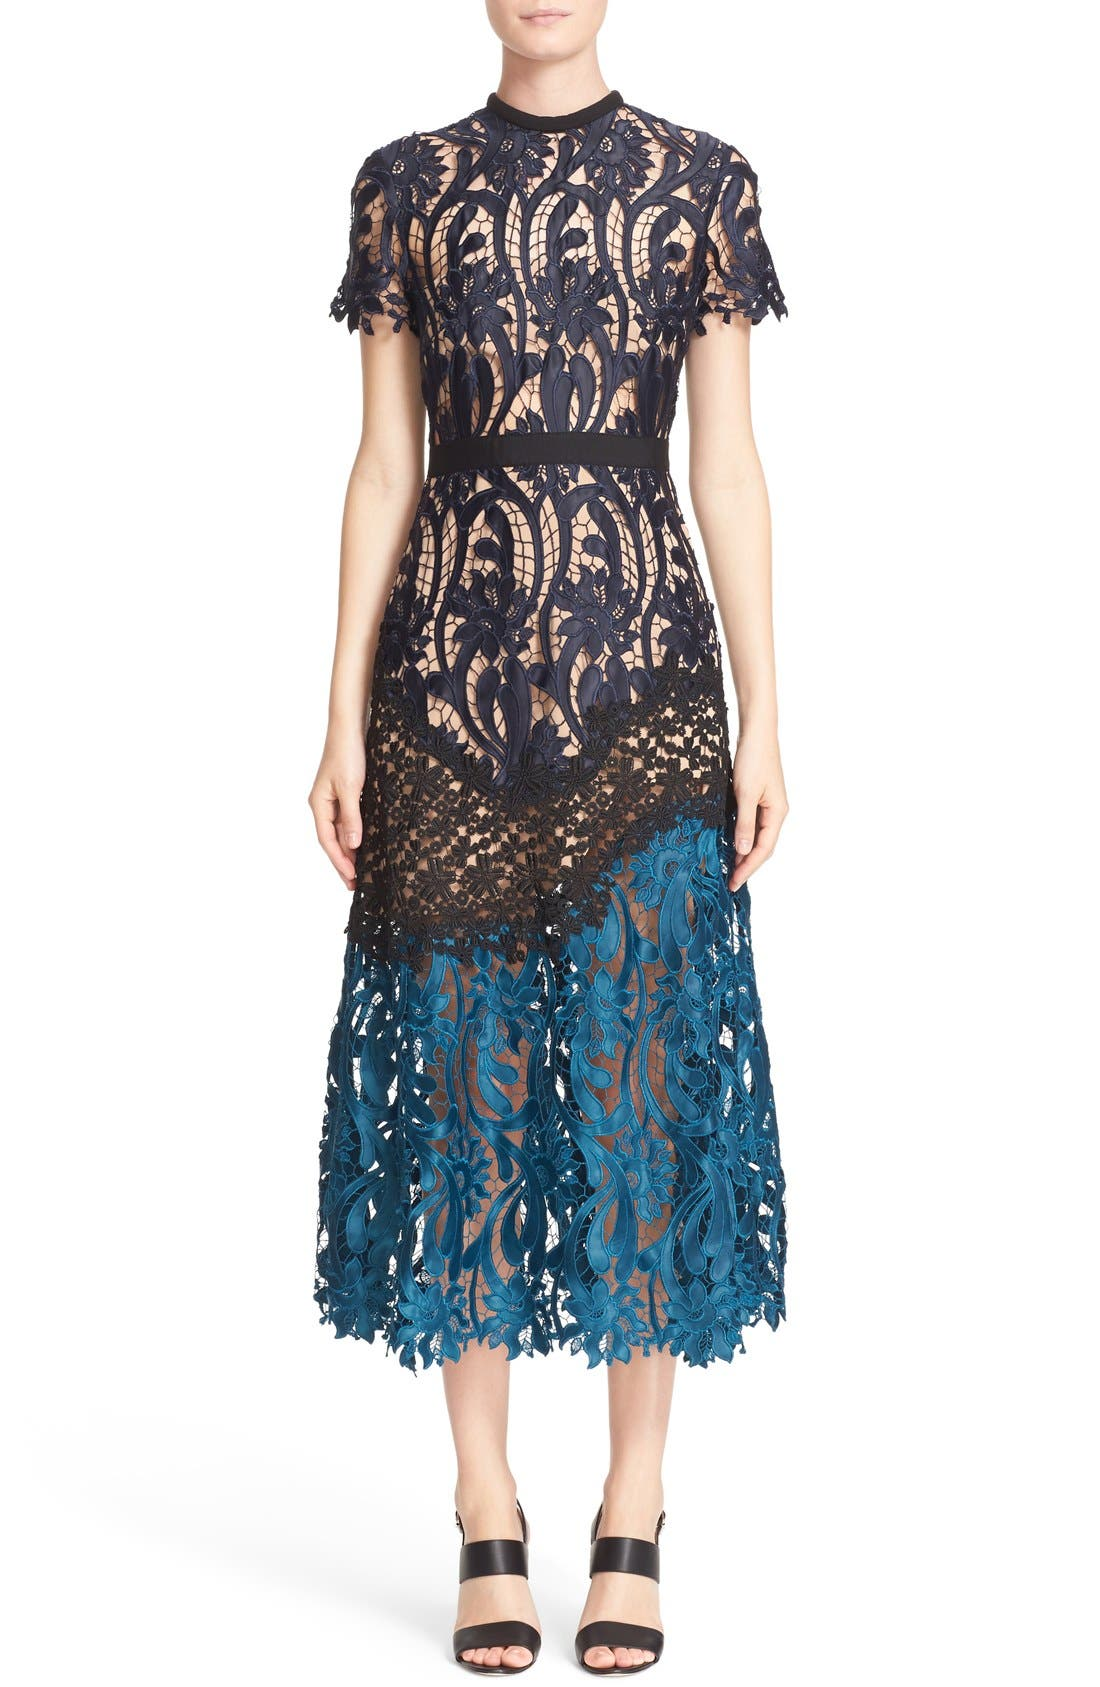 Alternate Image 1 Selected - Self-Portrait 'Prairie' Mixed Lace Midi Dress